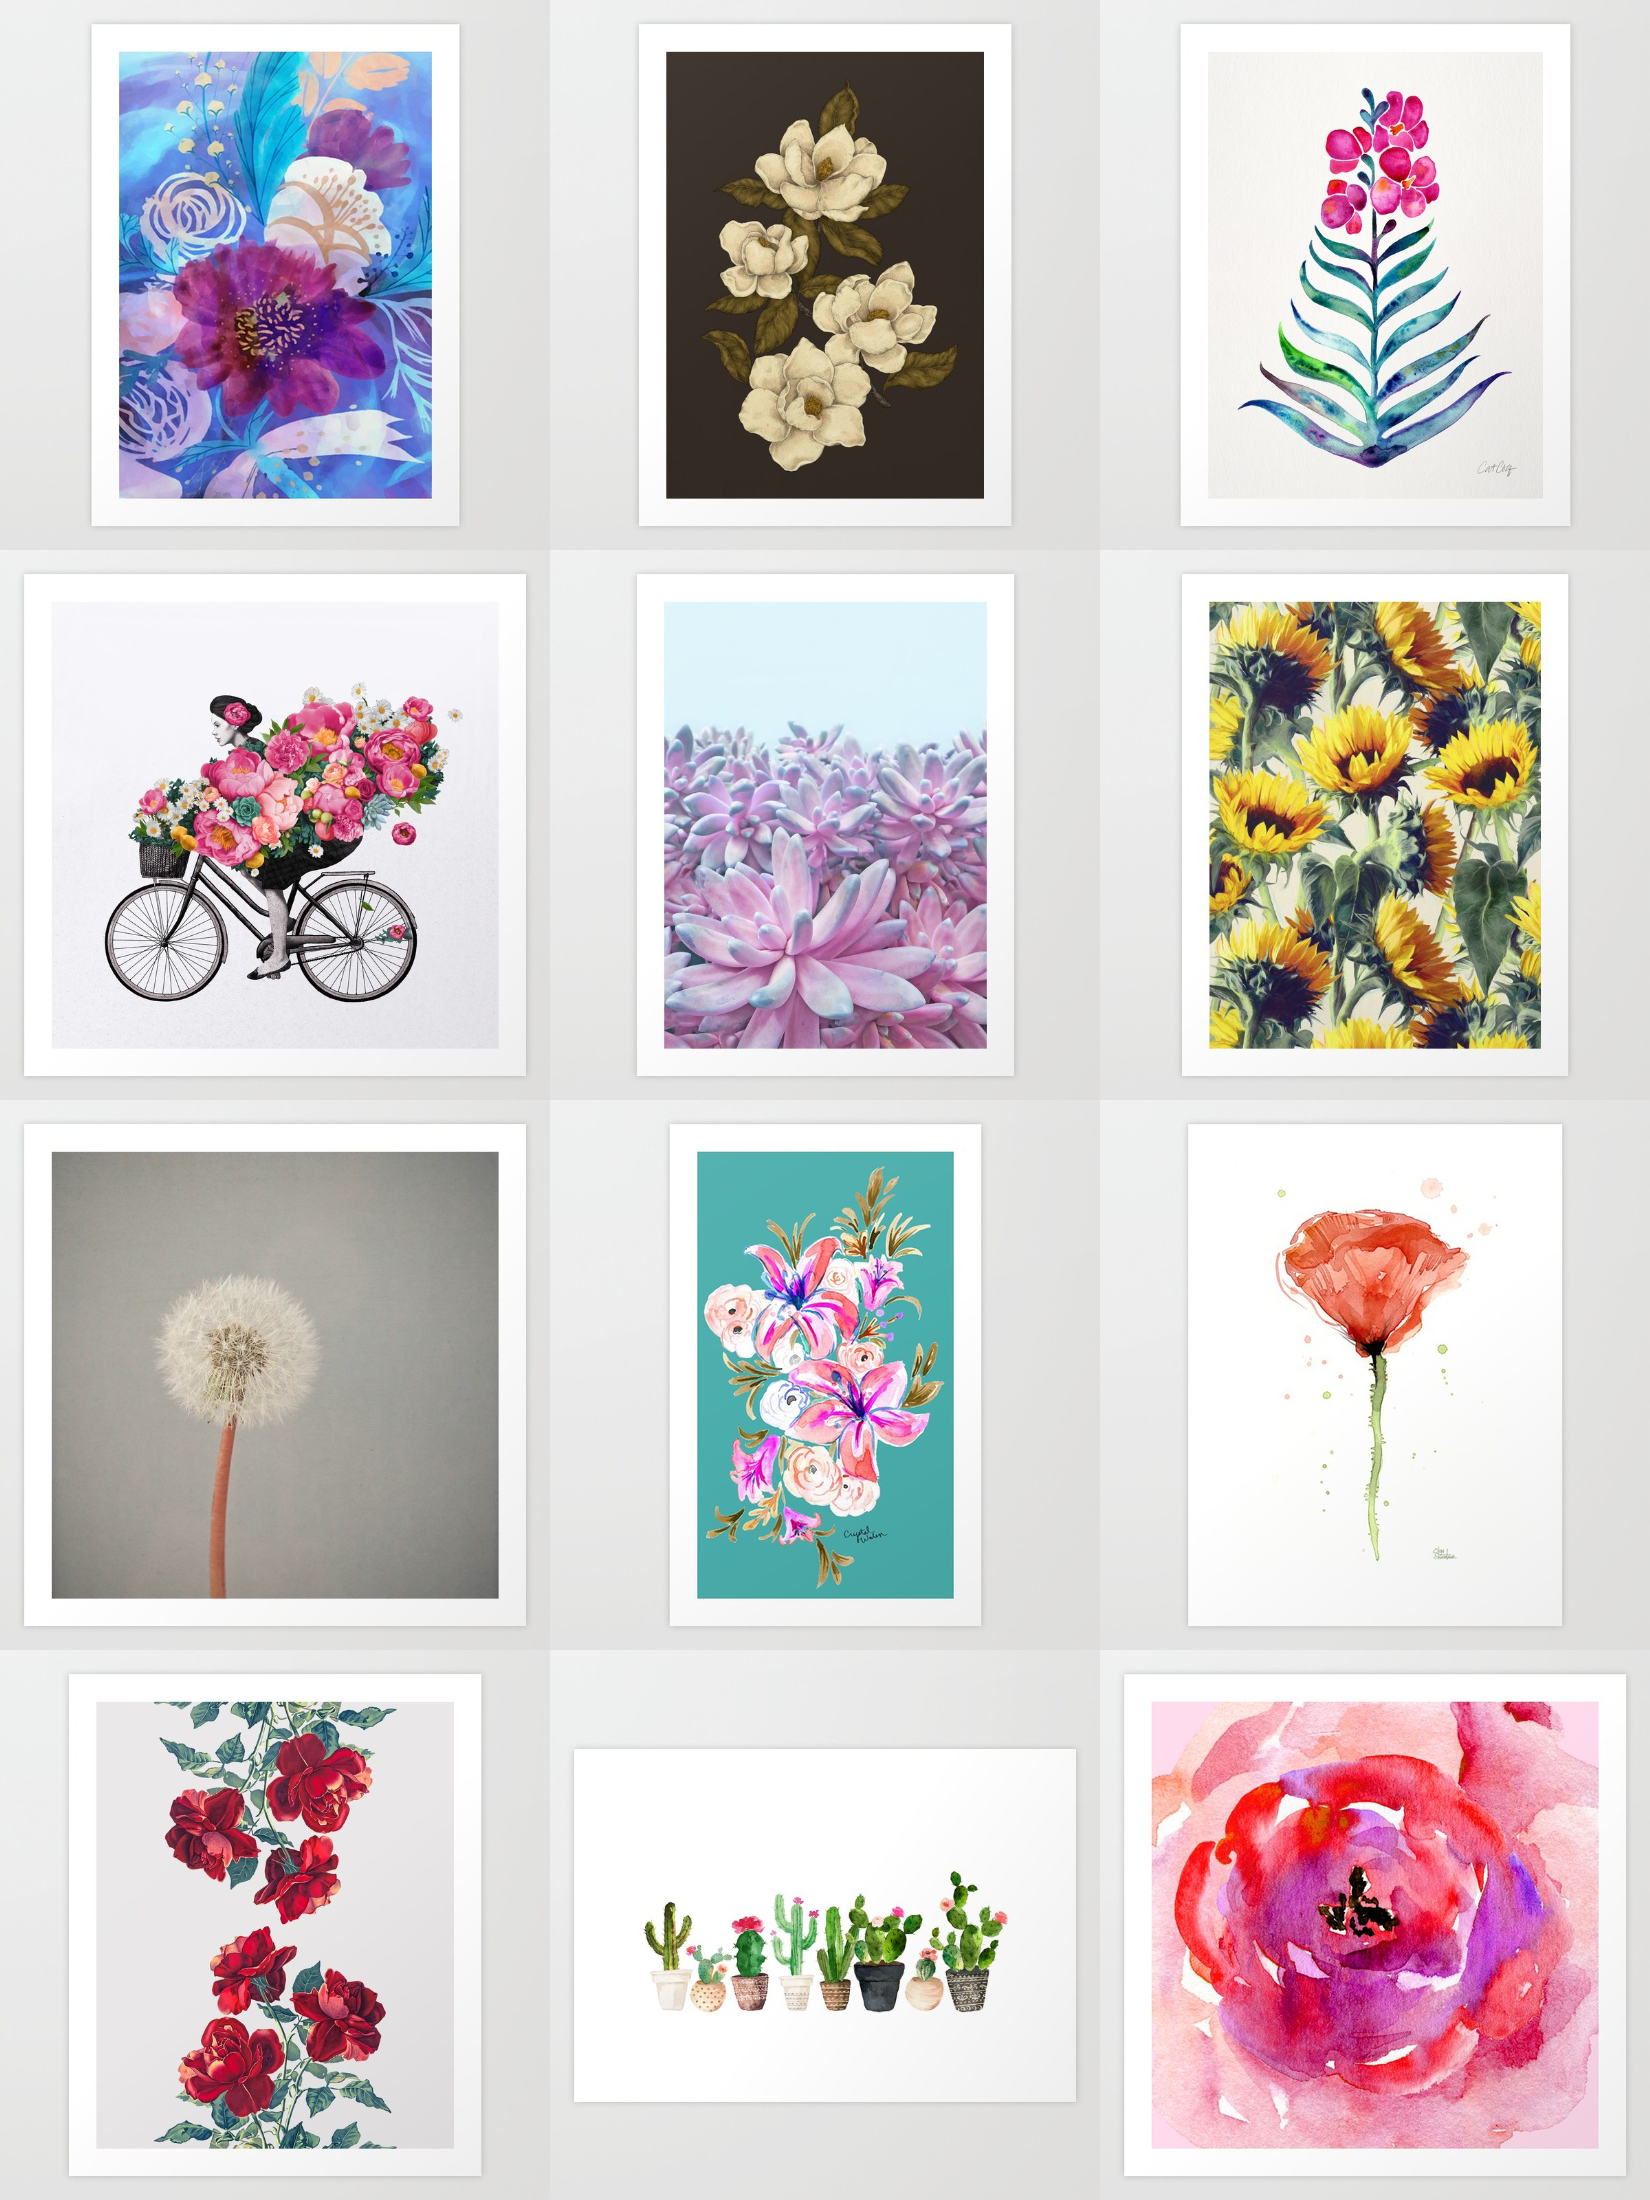 73ab9f77b Shop unique and original art prints on Society6. Society6 is home to  hundreds of thousands of artists from around the globe, uploading and  selling their ...